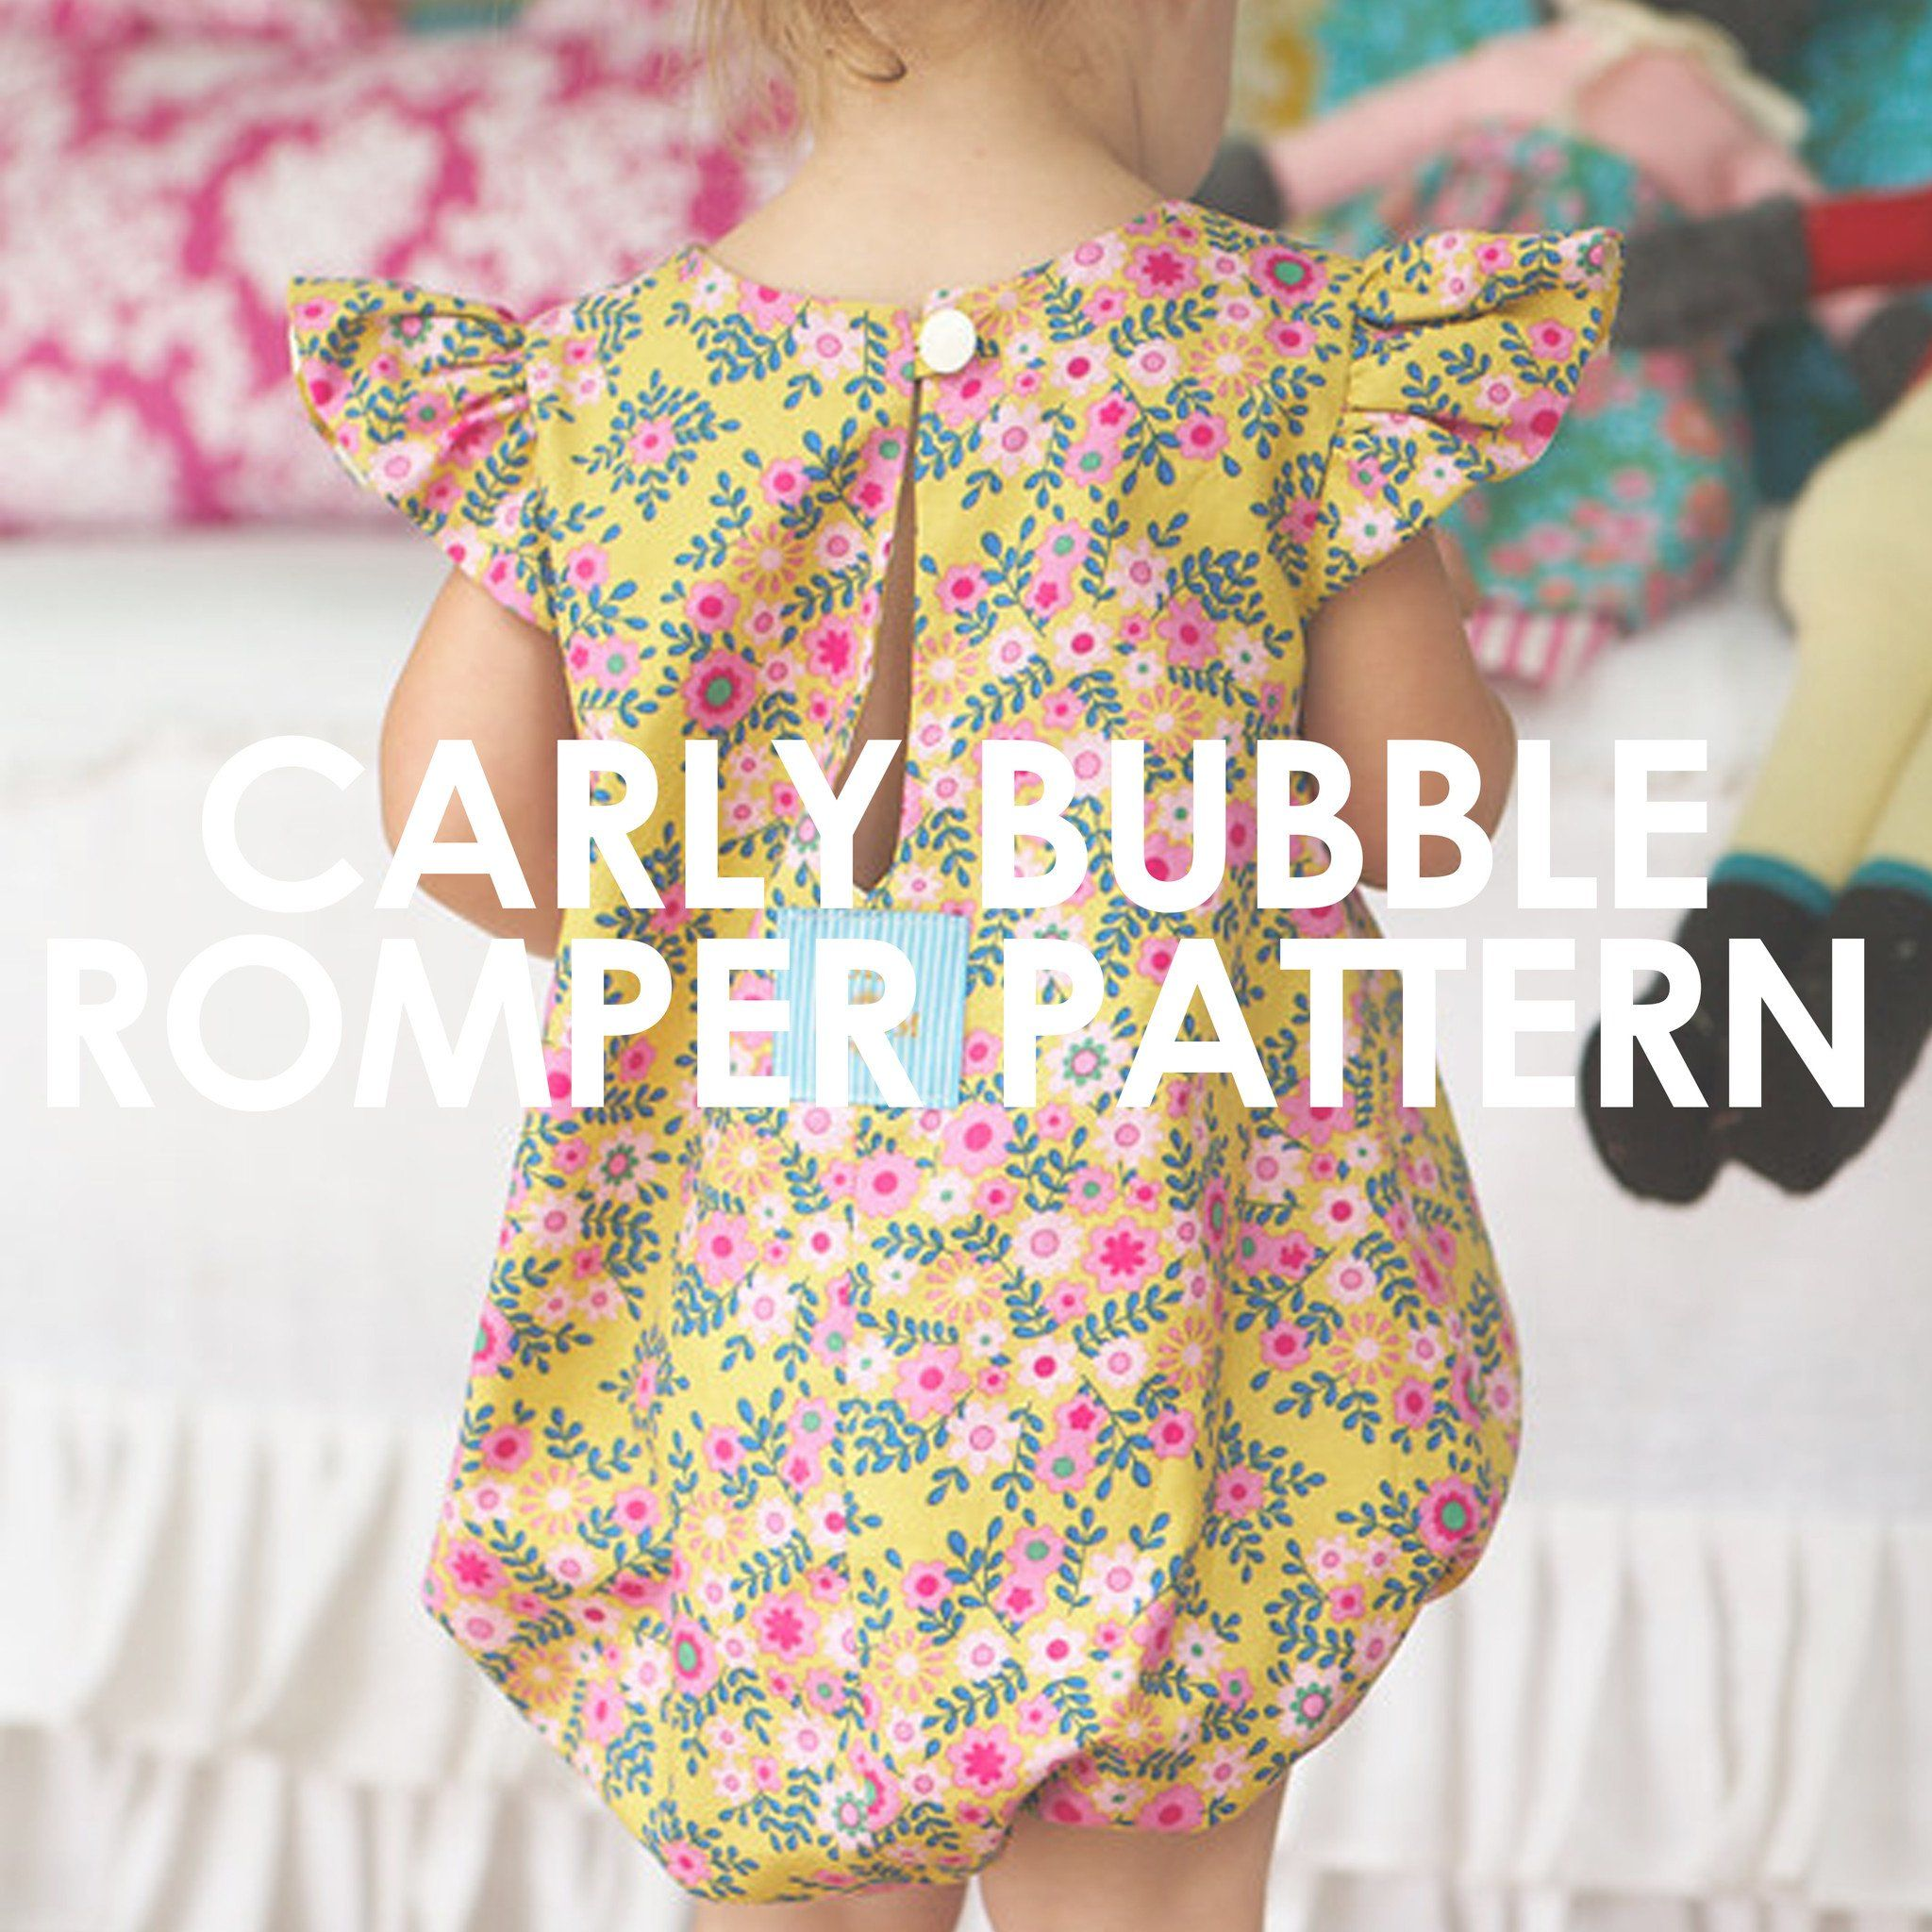 49c33e717 Carly Bubble Romper | Sewing Ideas | Baby romper pattern free, Baby ...